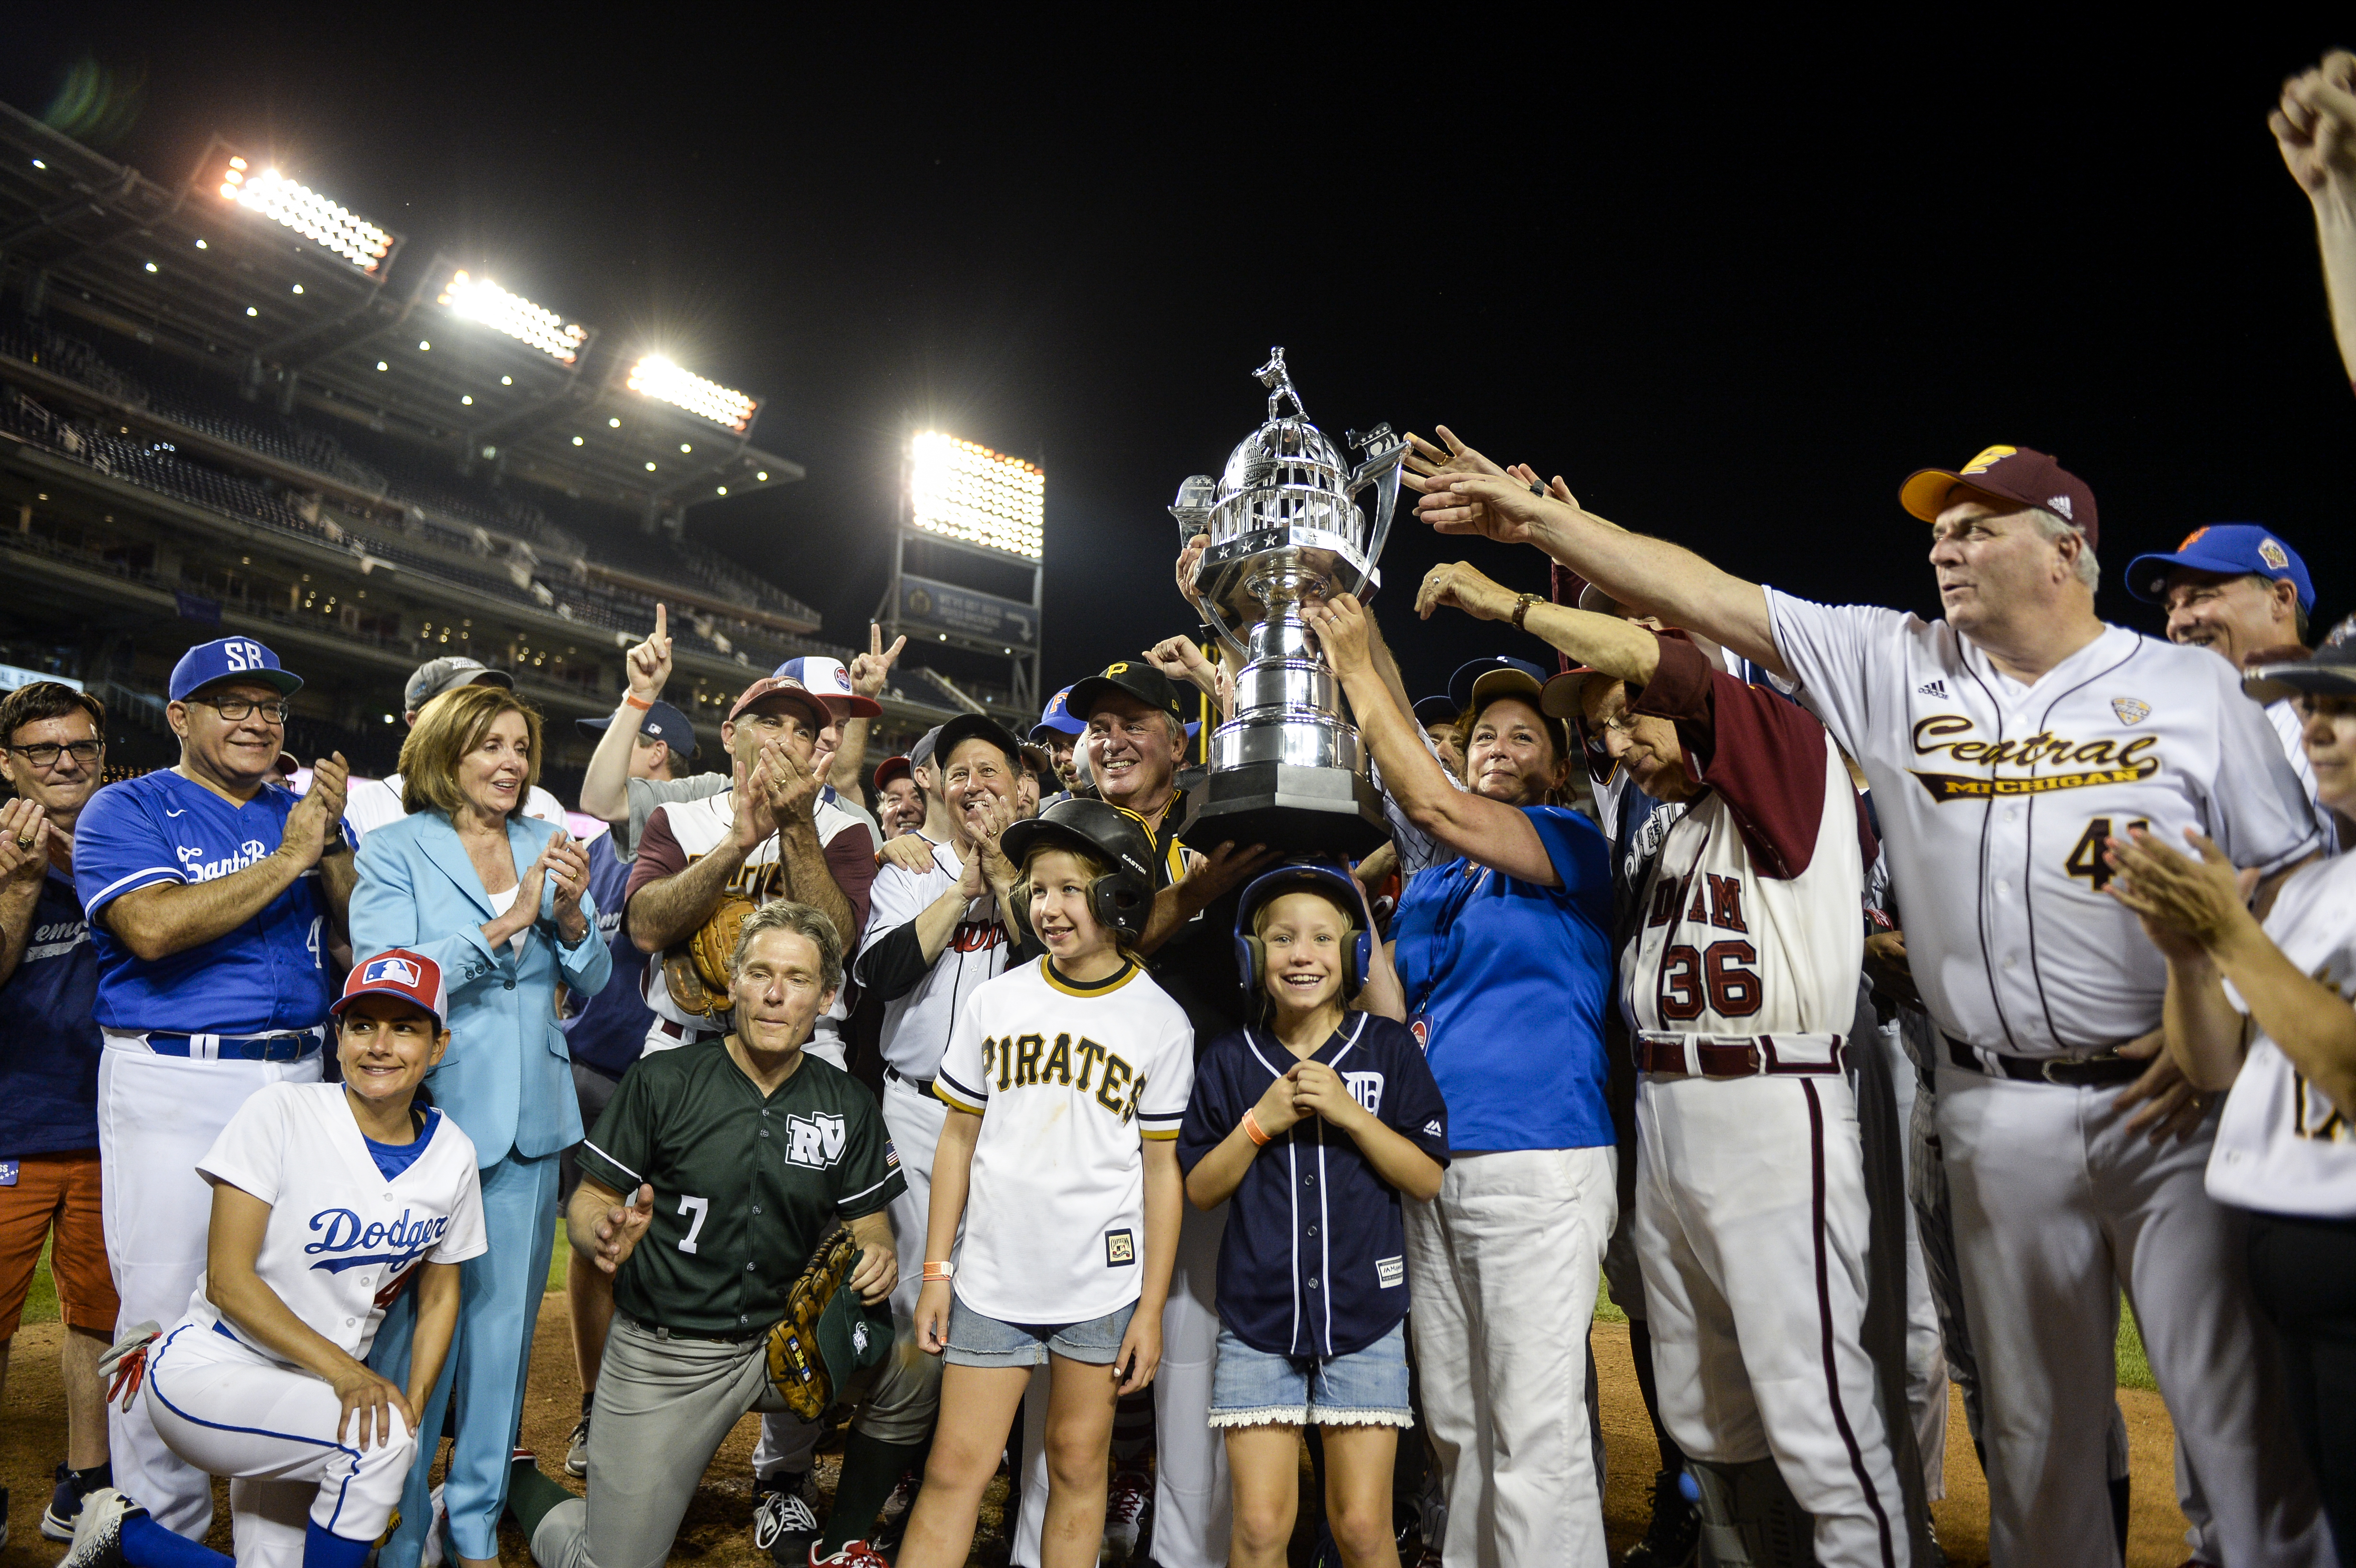 UNITED STATES - JUNE 26: The Democrats stand with their trophy after their 14-7 win over the Republicans in the 58th annual Congressional Baseball Game at Nationals Park on Wednesday June 26, 2019. (Photo by Caroline Brehman/CQ Roll Call)